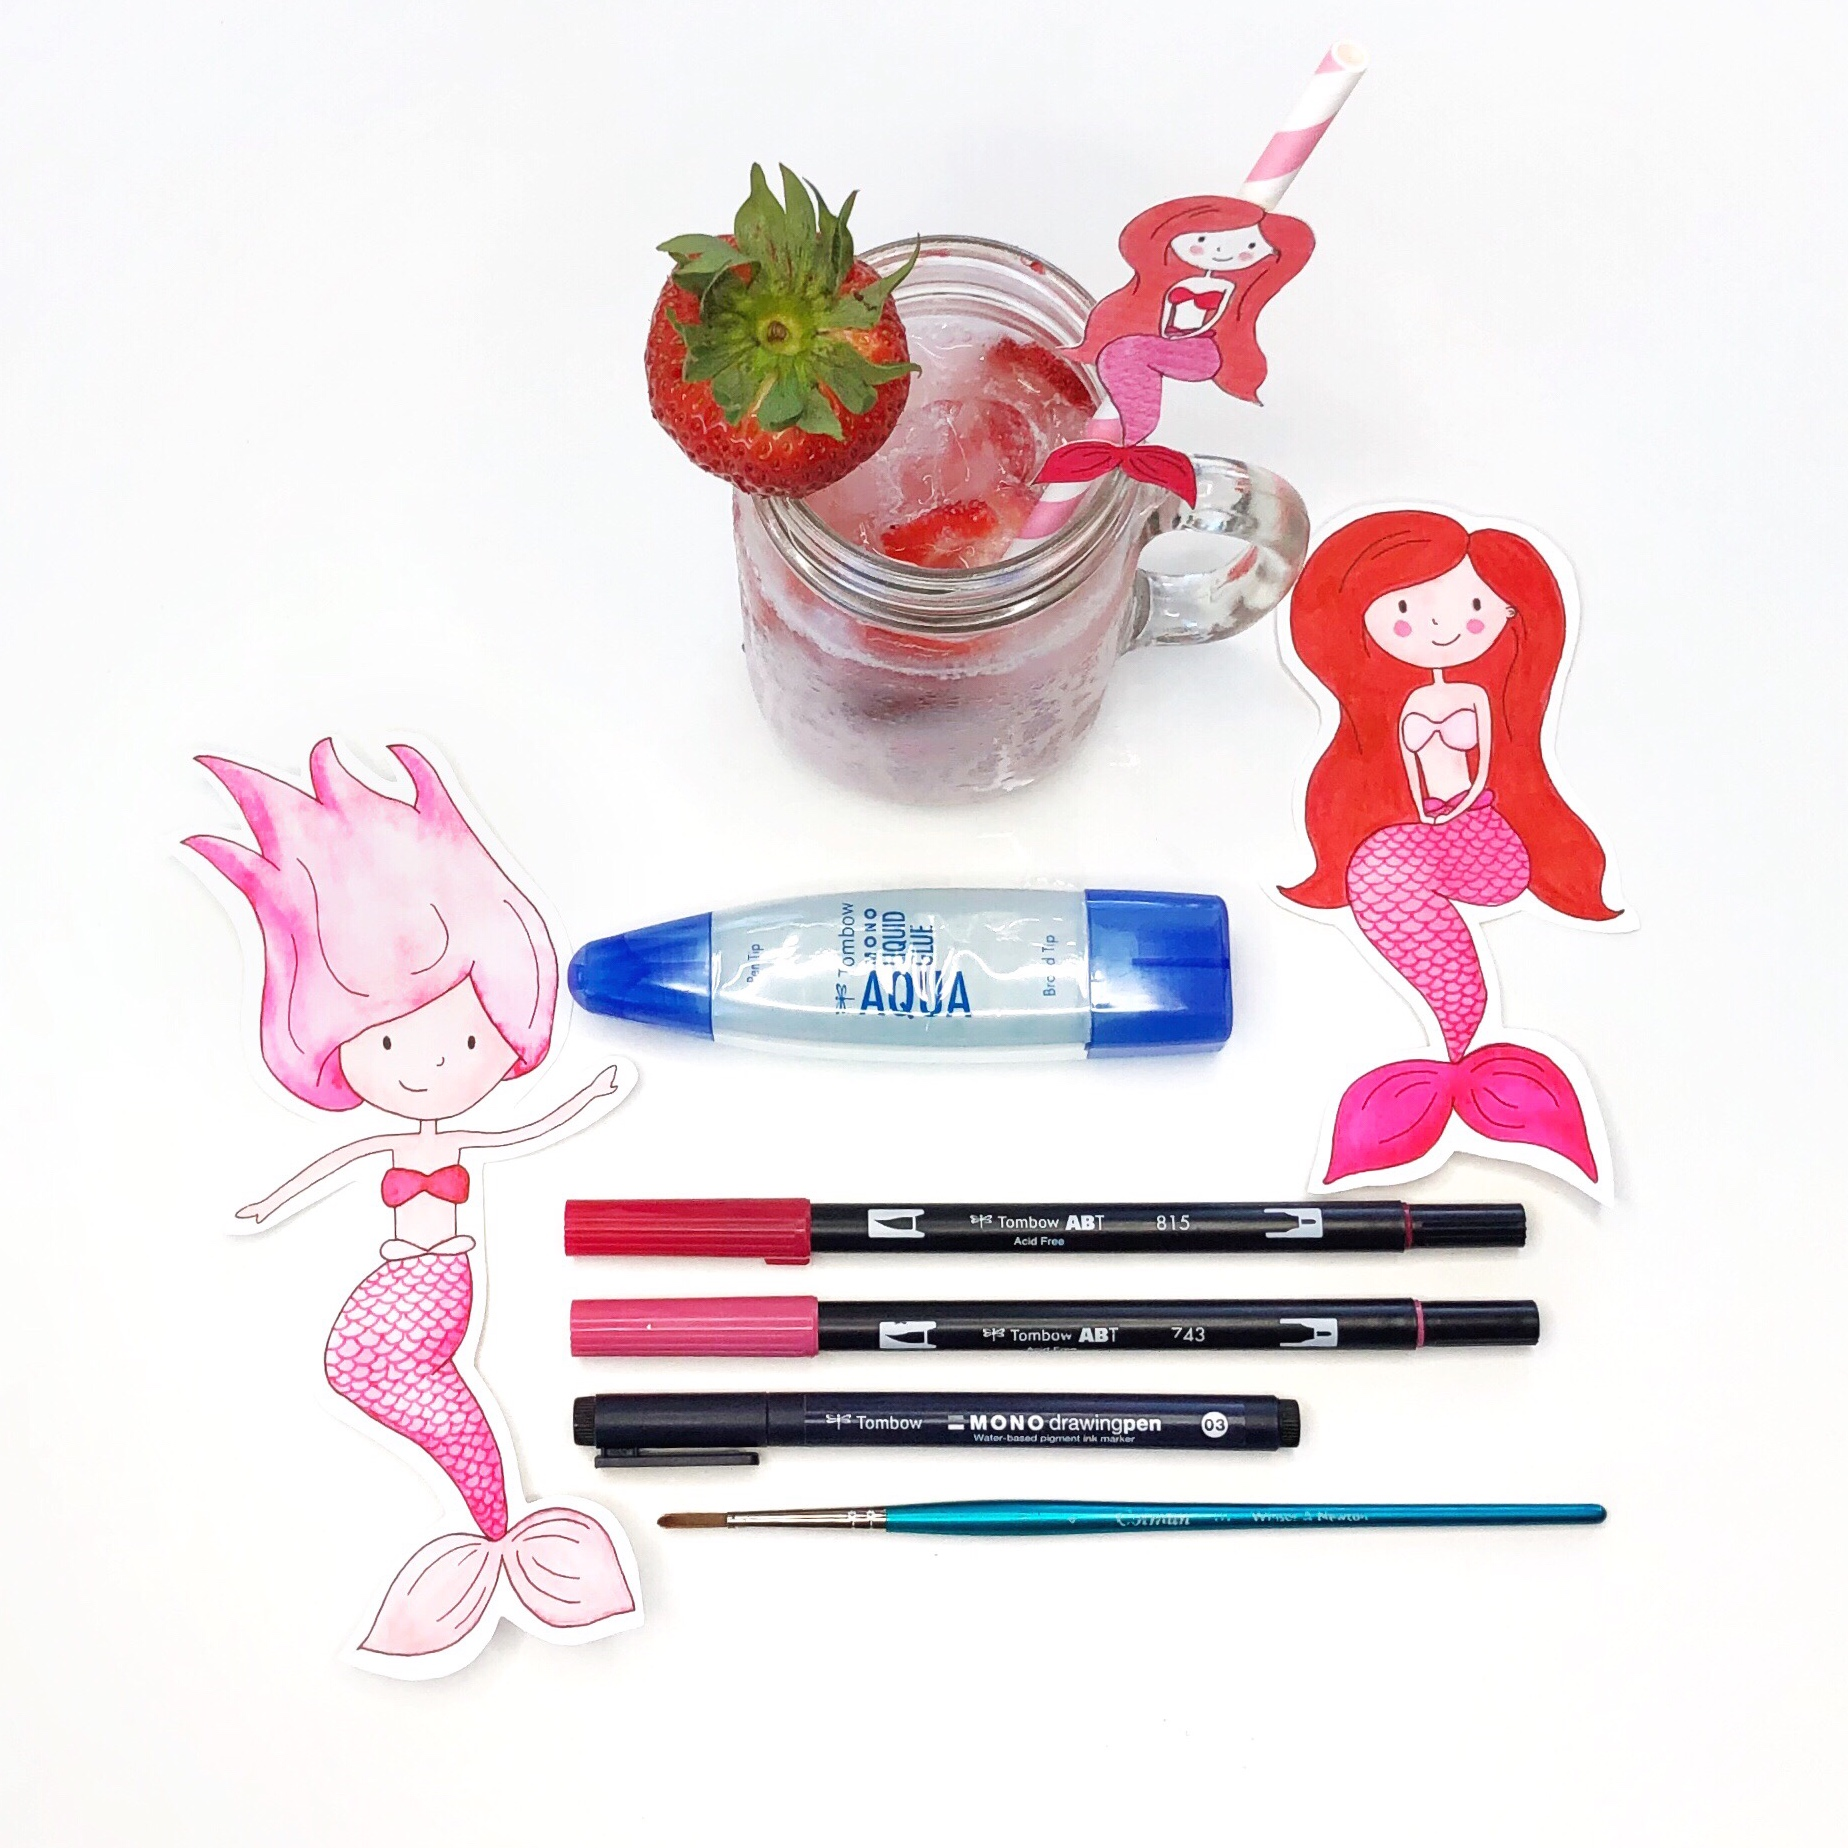 How to make your own drink umbrellas, mermaid straws, and strawberry drink toppers by Jessica Mack of BrownPaperBunny